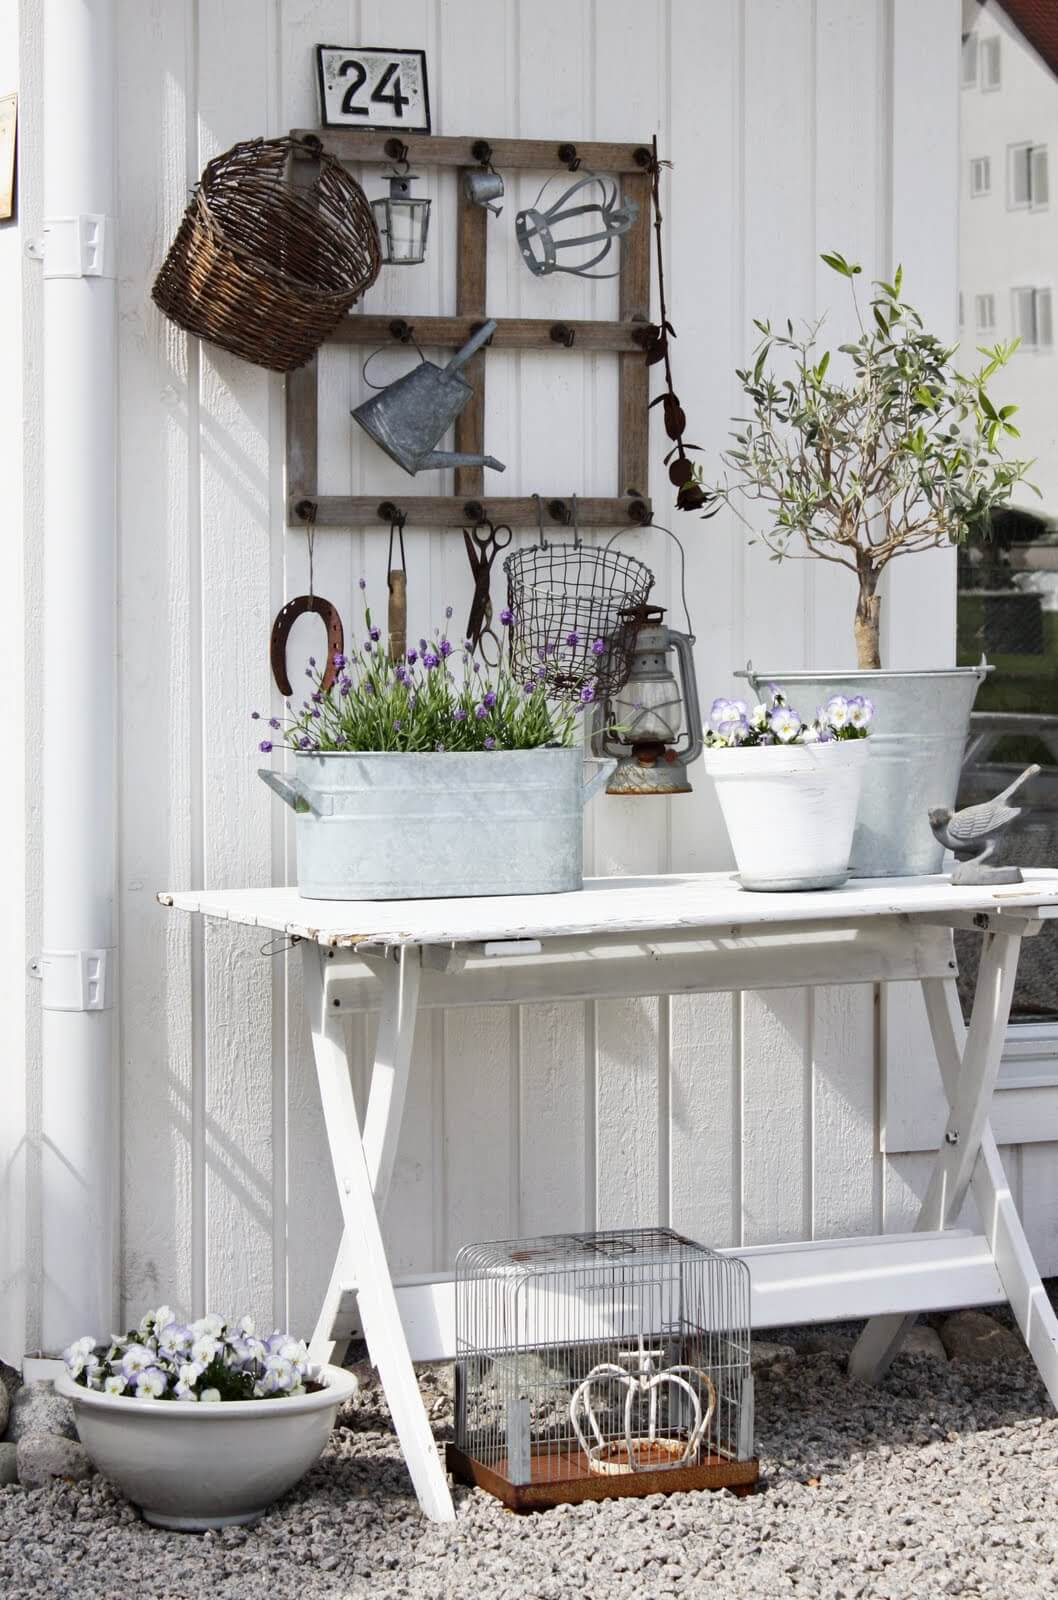 Exceptional Garden Display Table With Vintage Metal Touches